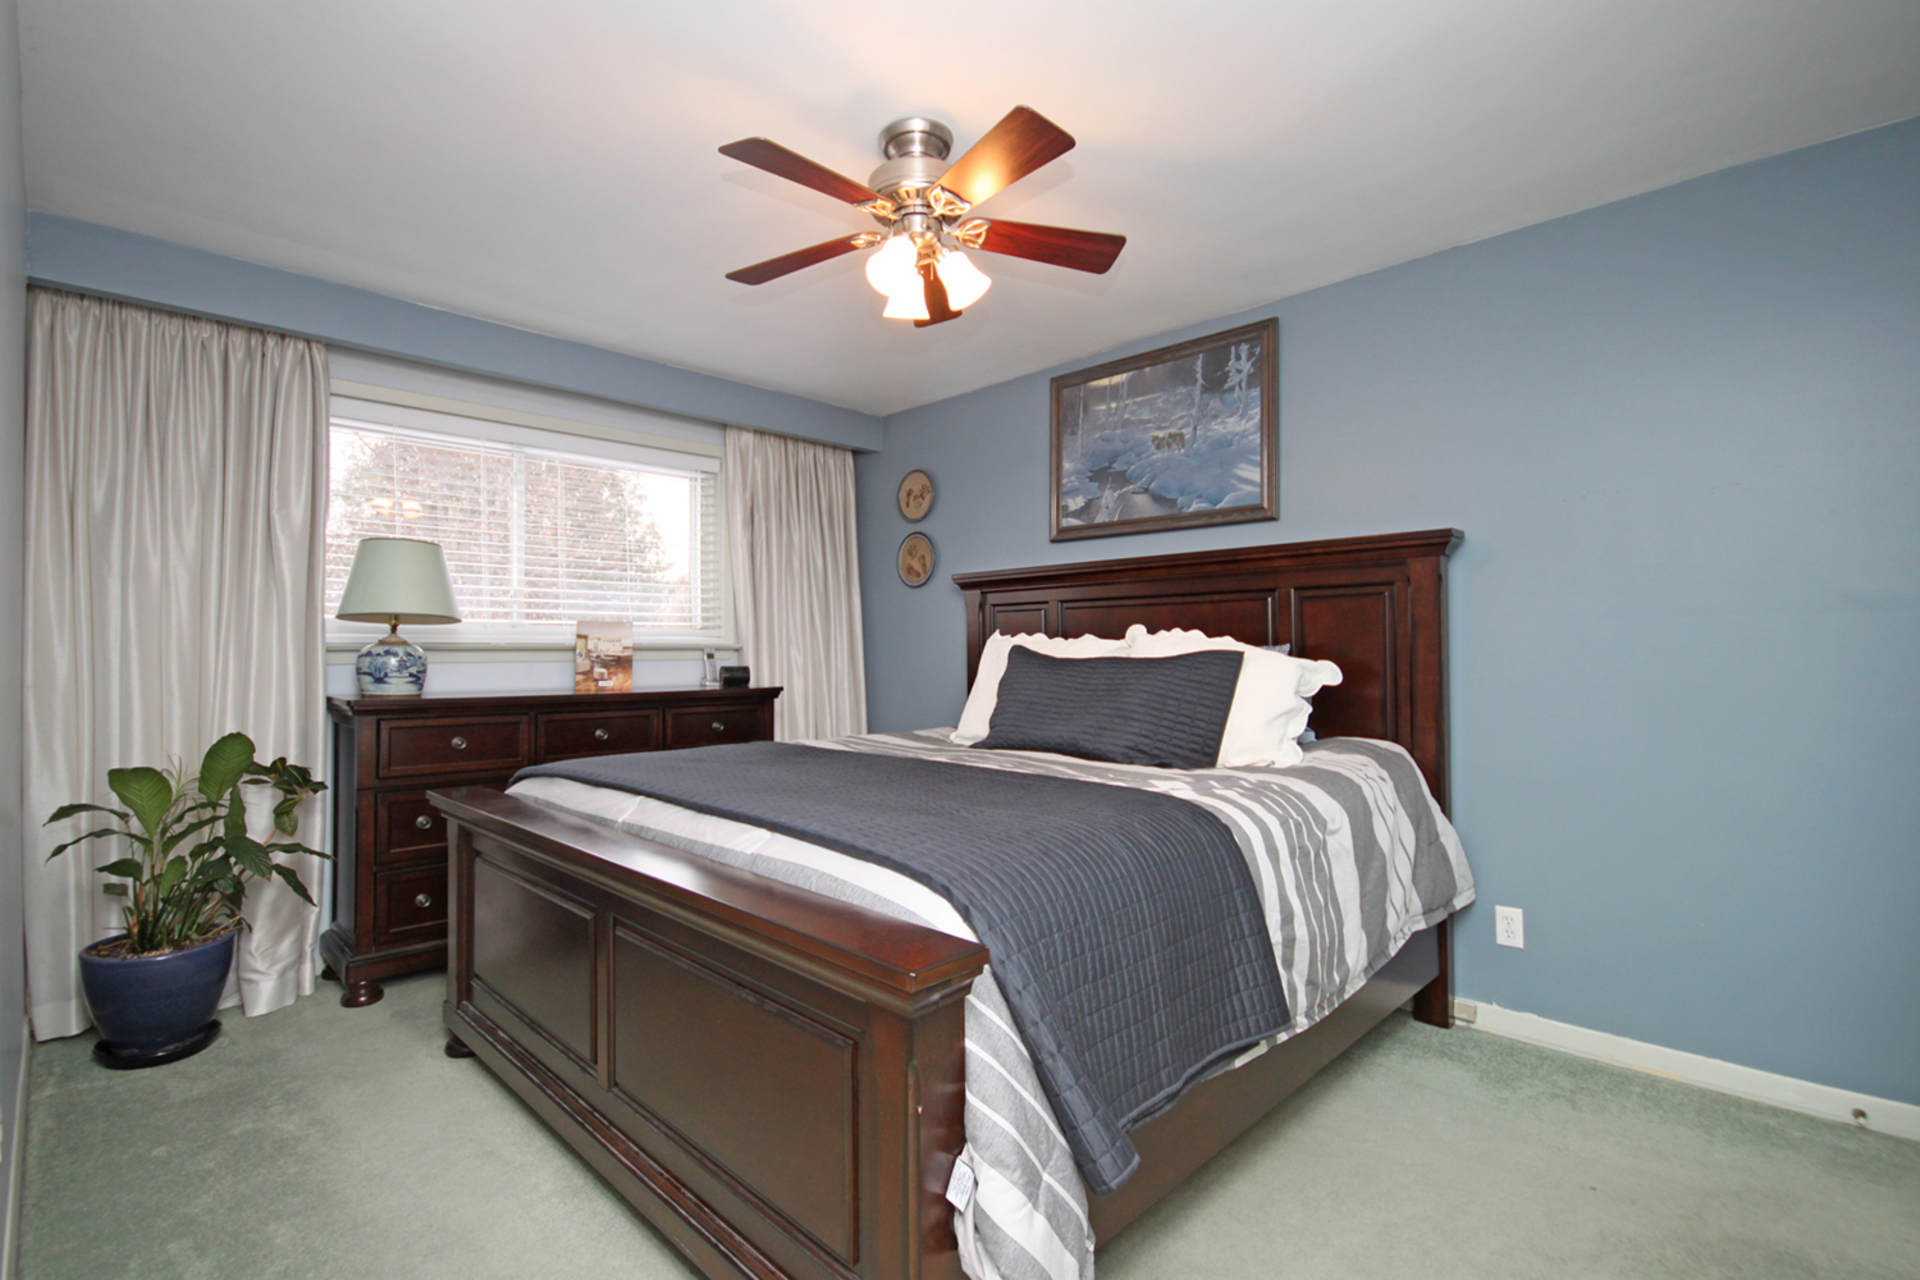 Master Bedroom at 53 Dukinfield Crescent, Parkwoods-Donalda, Toronto